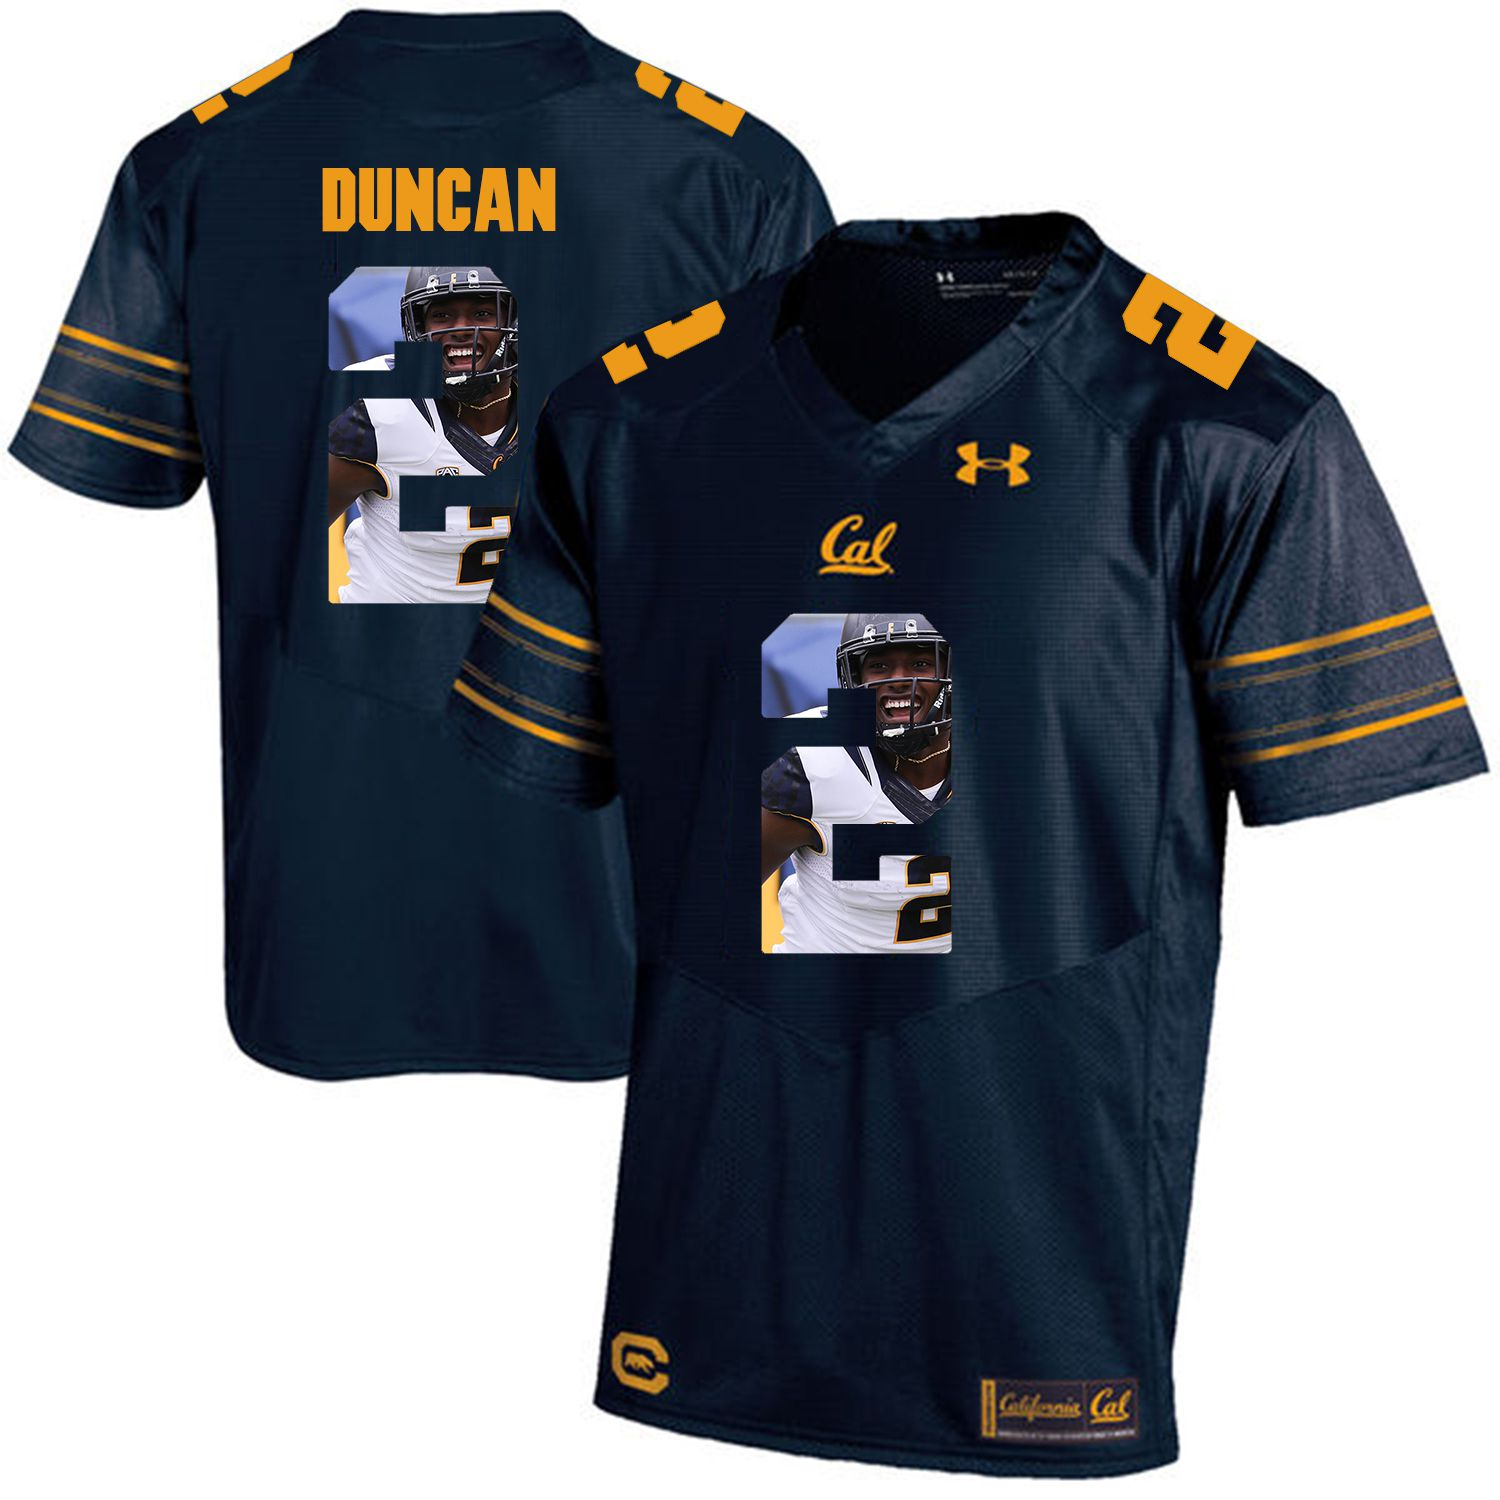 Men California Golden Bears 2 Jordan Duncan Dark blue Customized NCAA Jerseys